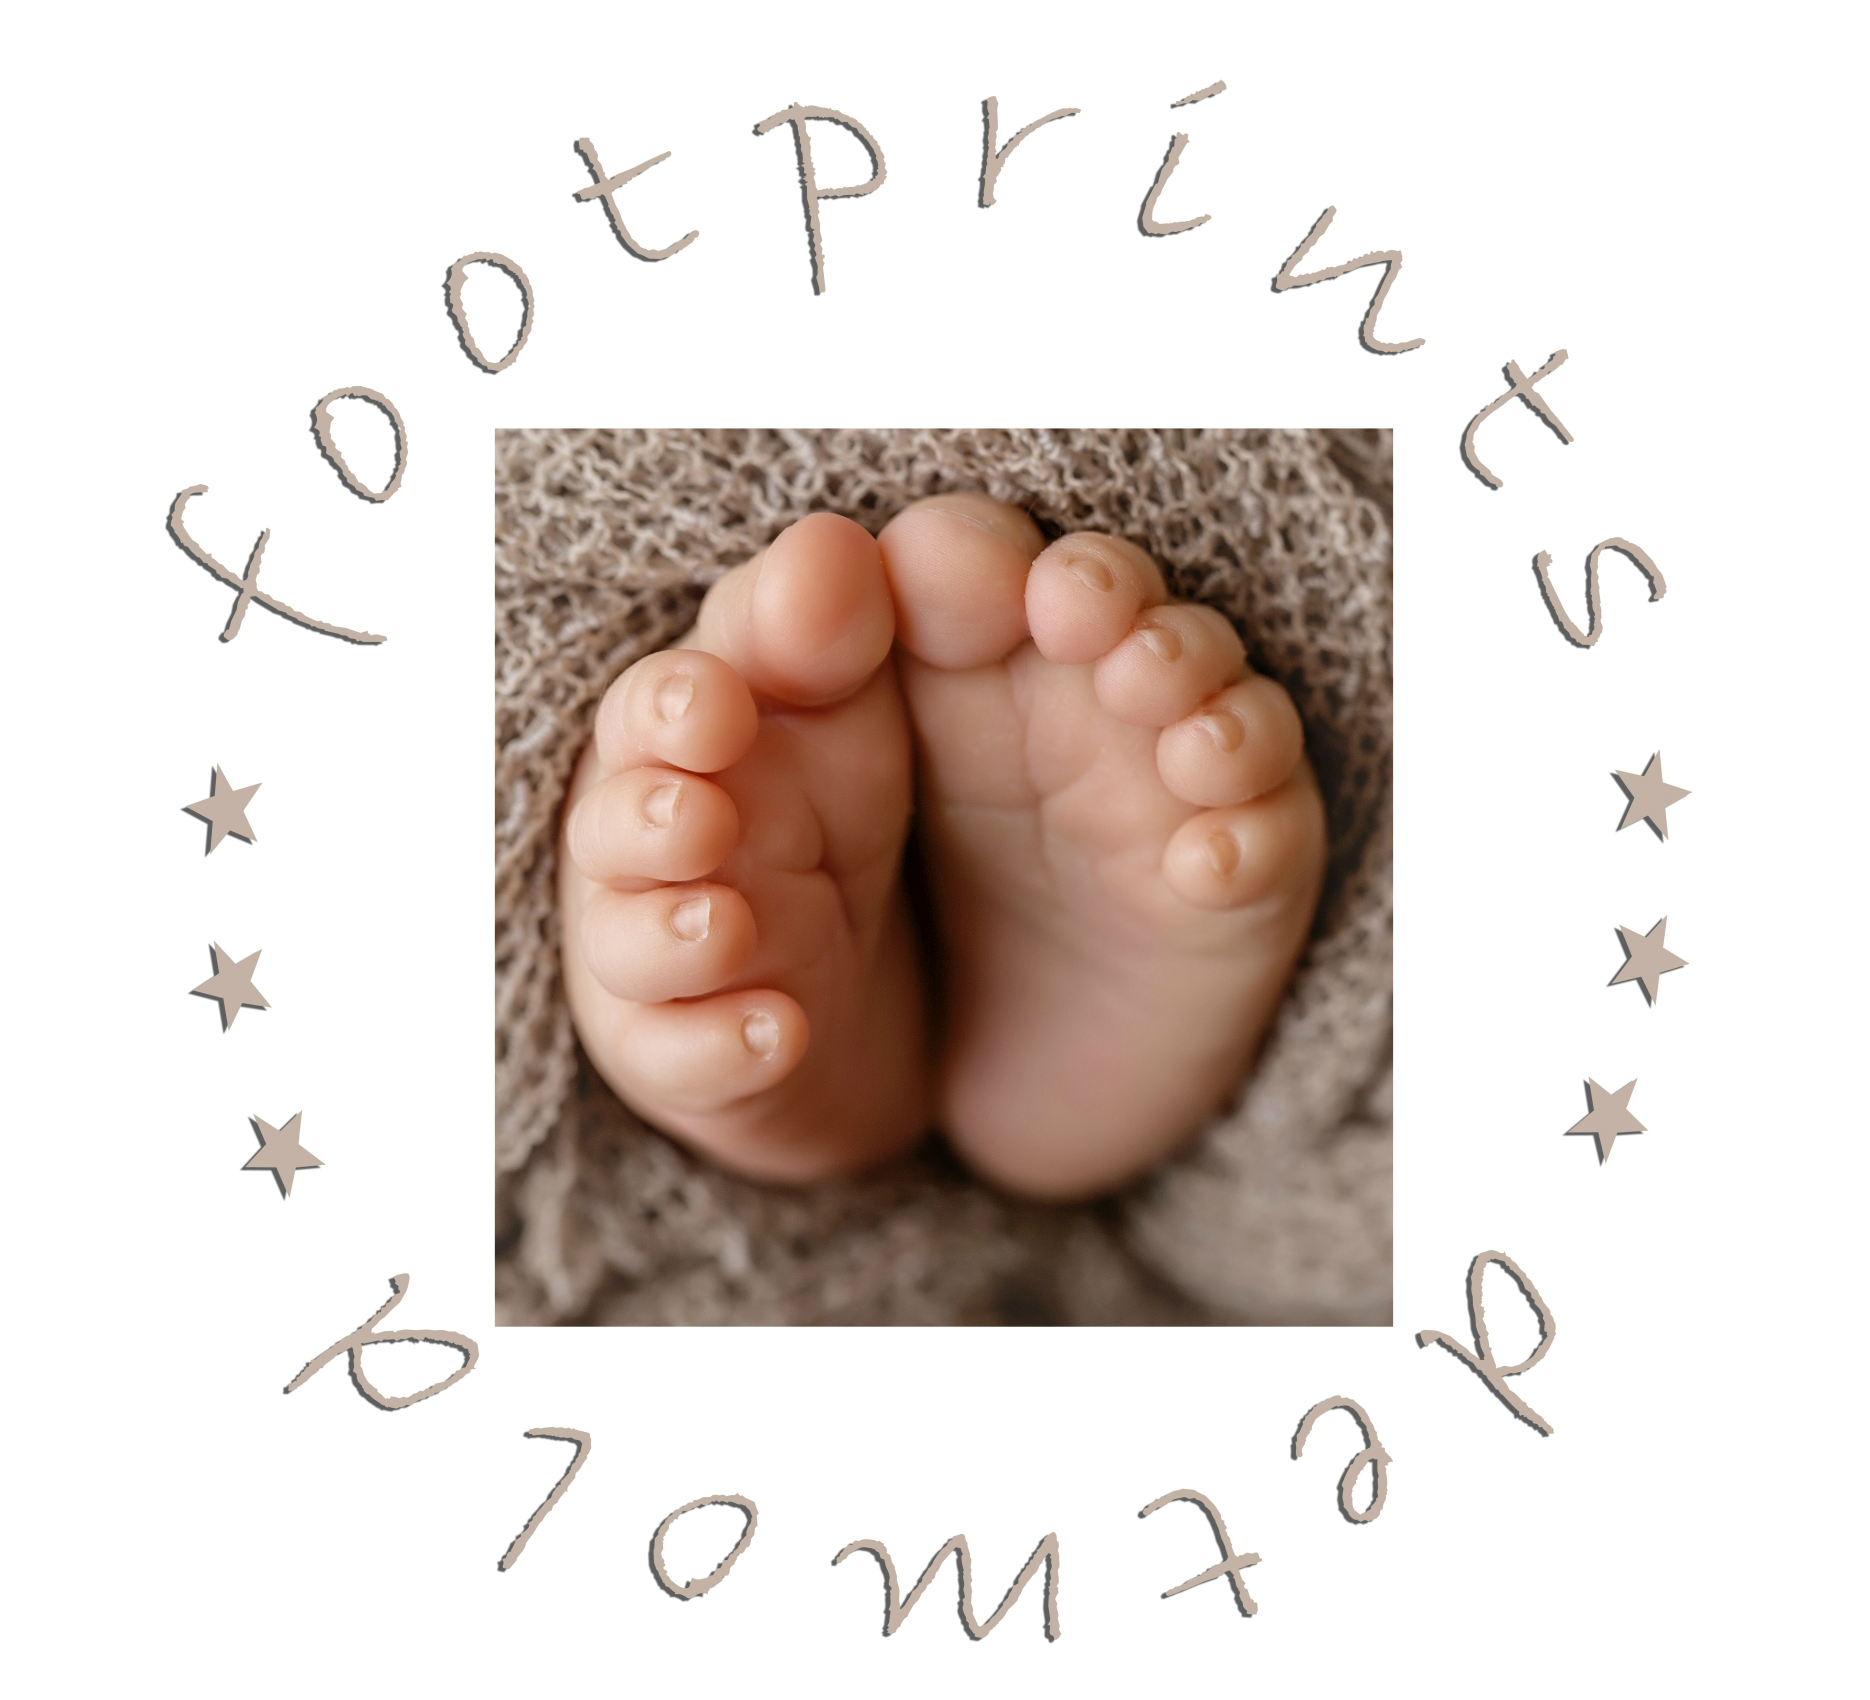 Footprints-Detmold.de